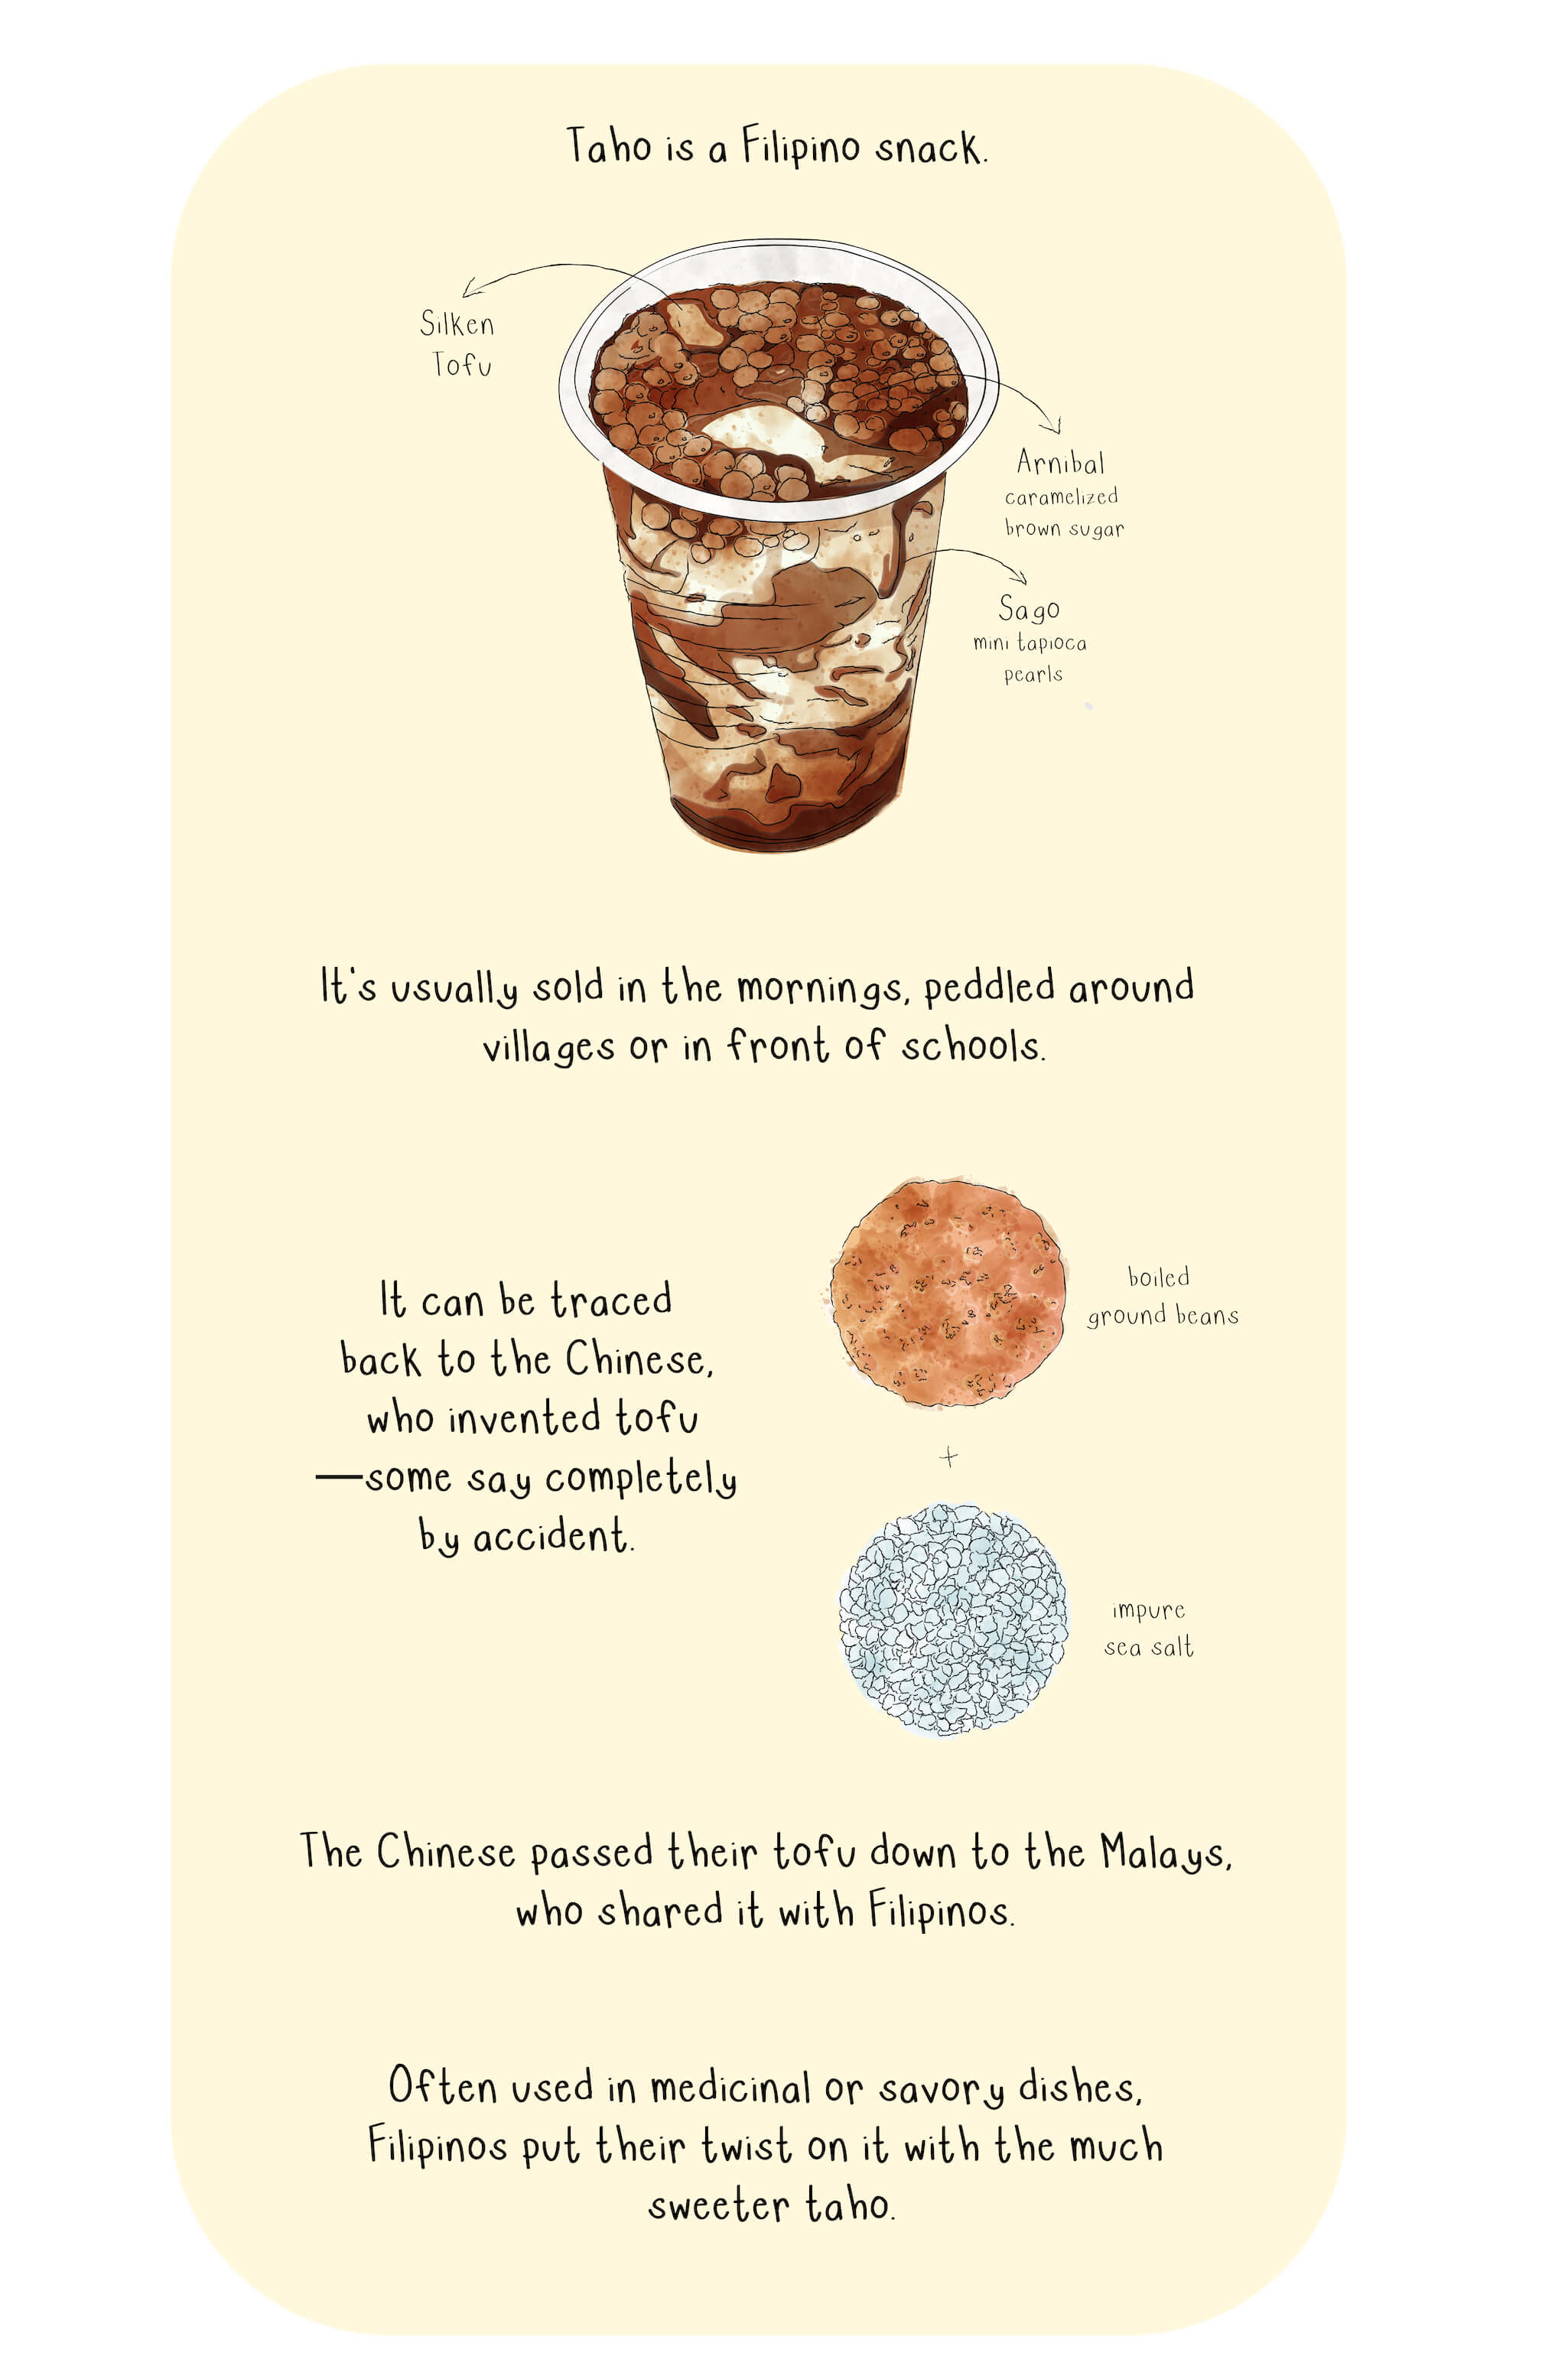 Contents of the Filipino Taho snack, silken tofu, arnibal (caramelized sugar) and sago (mini tapioca pearls), traced back to the Chinese traders and Malays who passed it on to Filipinos